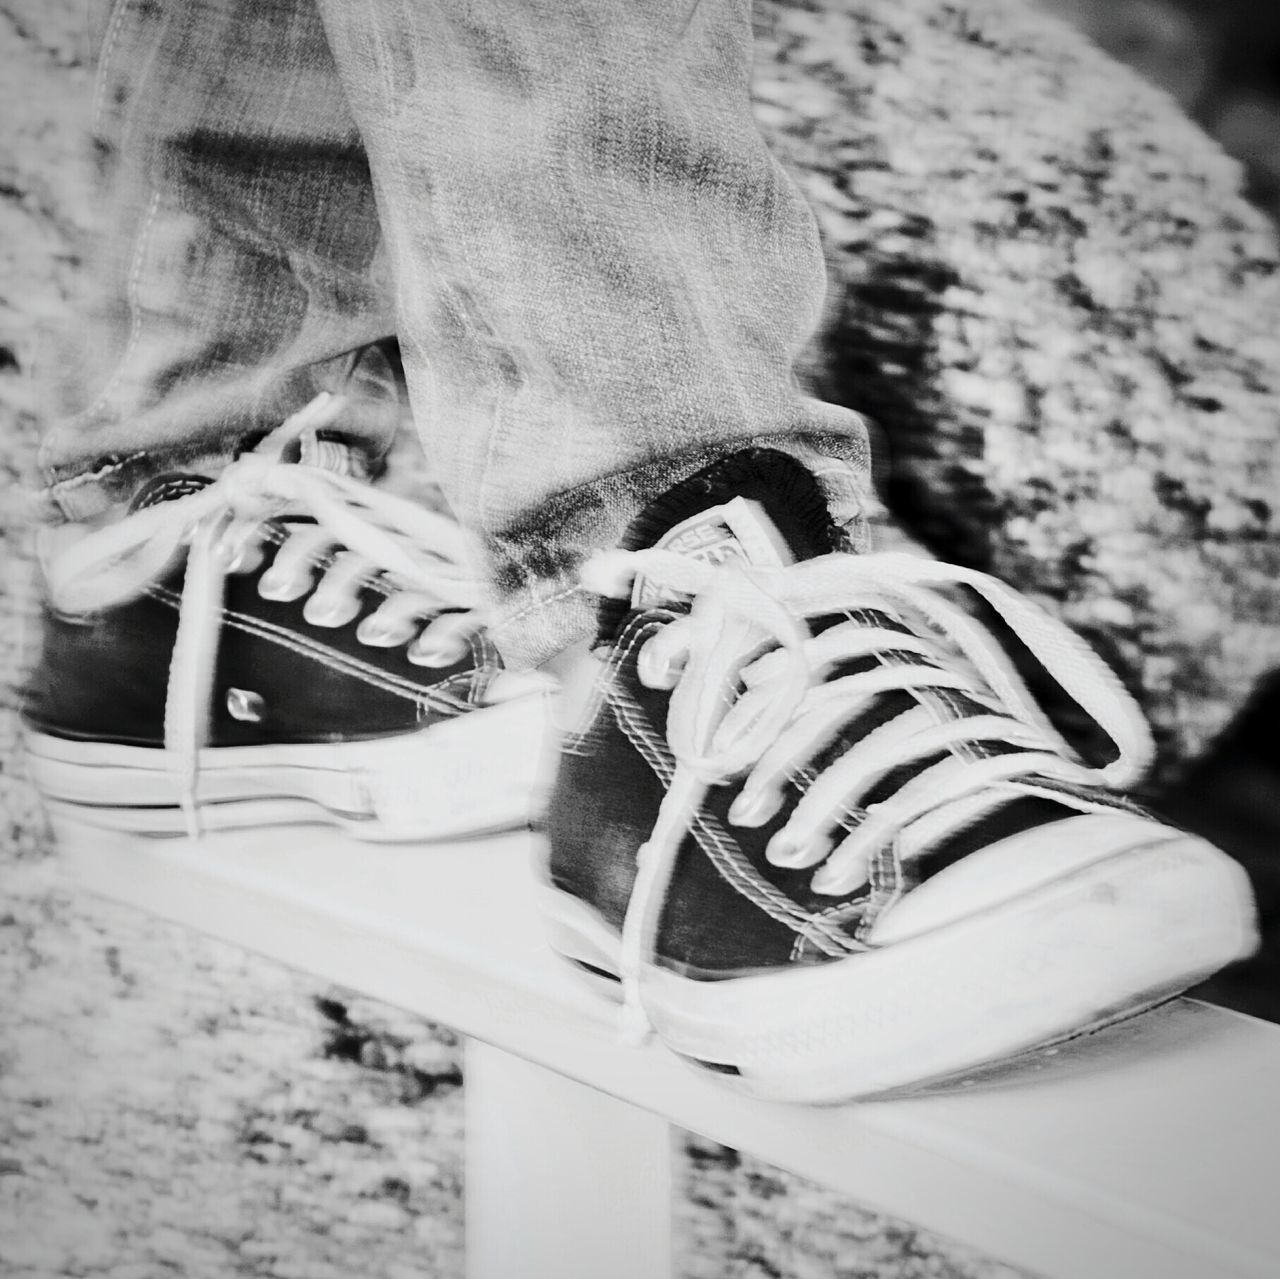 One False Step Blur Blurred Motion Blurred Outdoors Close-up People Photography Blackandwhite Black And White Photography Abstract Photography Fine Art My Perspective Outdoor Photography Close Up Photography ForTheLoveOfPhotography IShootFromMyWheelchair Eye4photography  Fresh On Eyeem  Eyeem Market Eyeemphotography EyeEm Perspective Fashion Photography Lifestyles Abstract